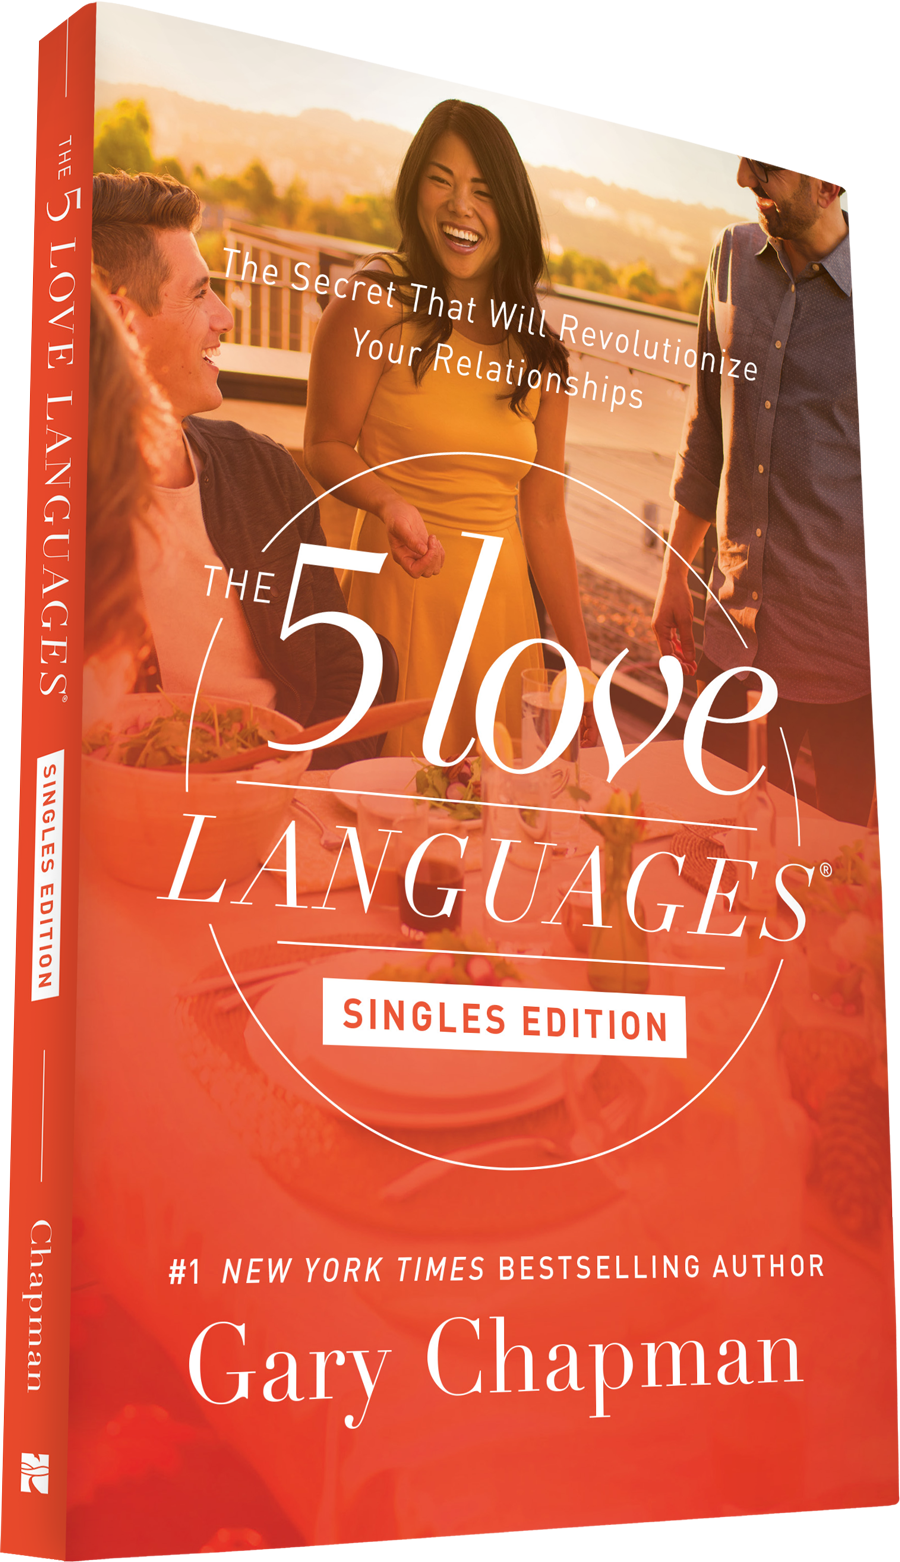 The five love languages for singles by gary chapman audiobook.